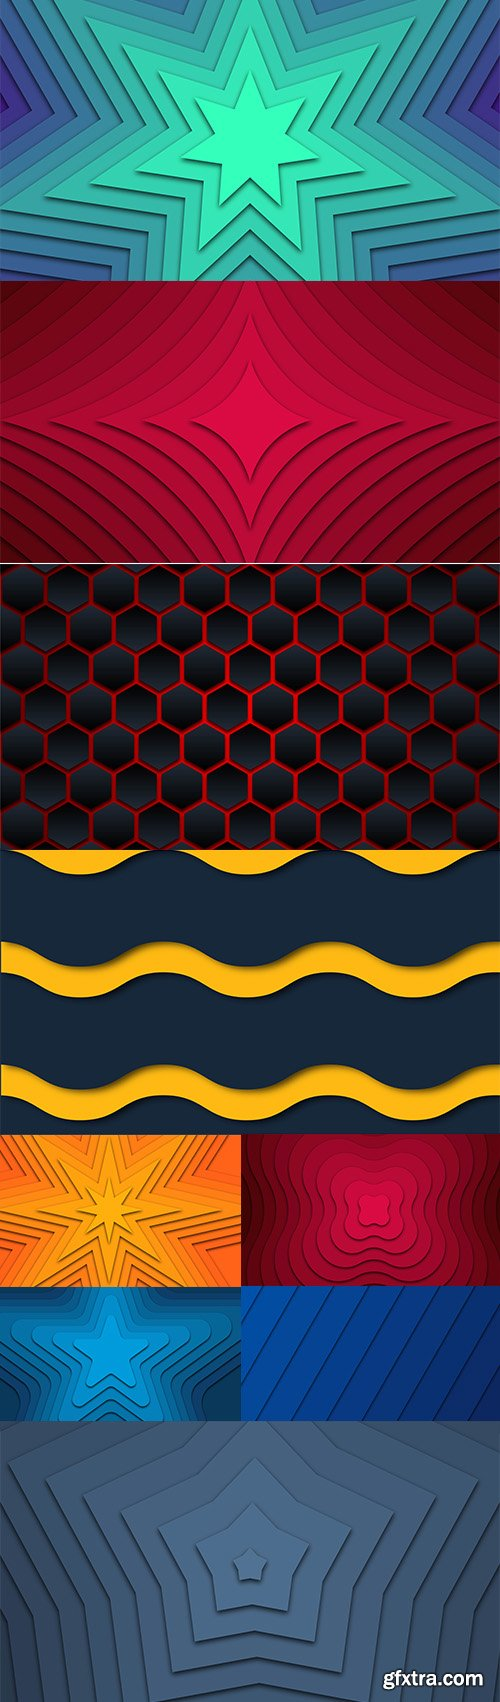 Geometric Wave Abstract Premium Illustrations Vector Set